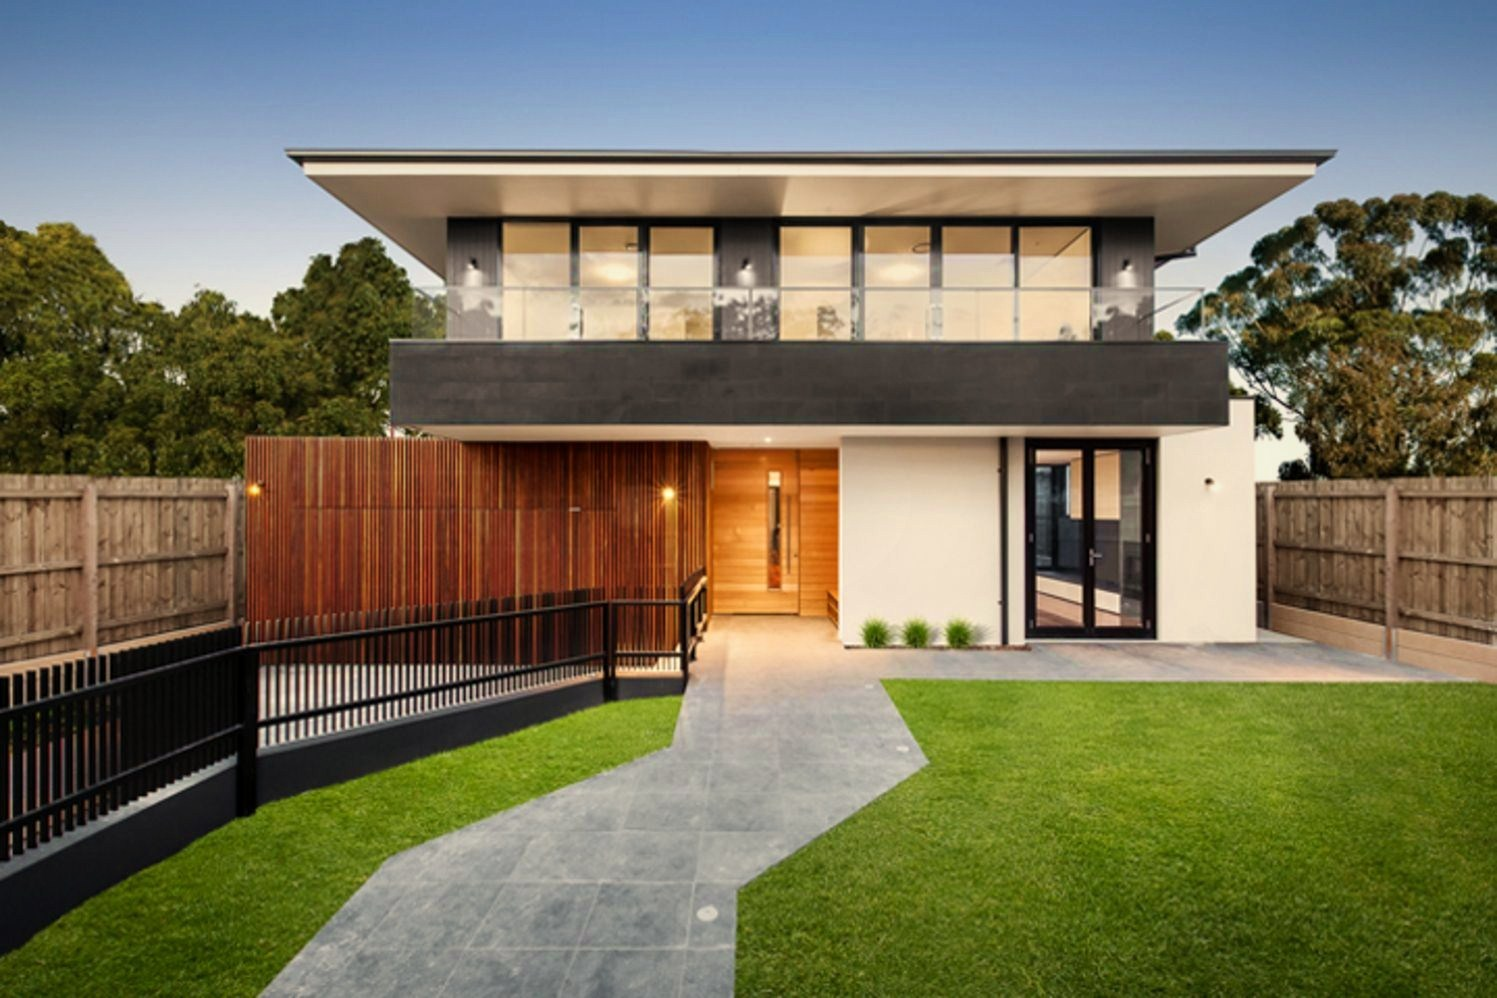 https://elonahome.com/wp-content/uploads/2020/07/Tropical-home-style-that-combines-rich-wood-color-and-refreshing-landscape-Jindabyne-Ave-House.jpg